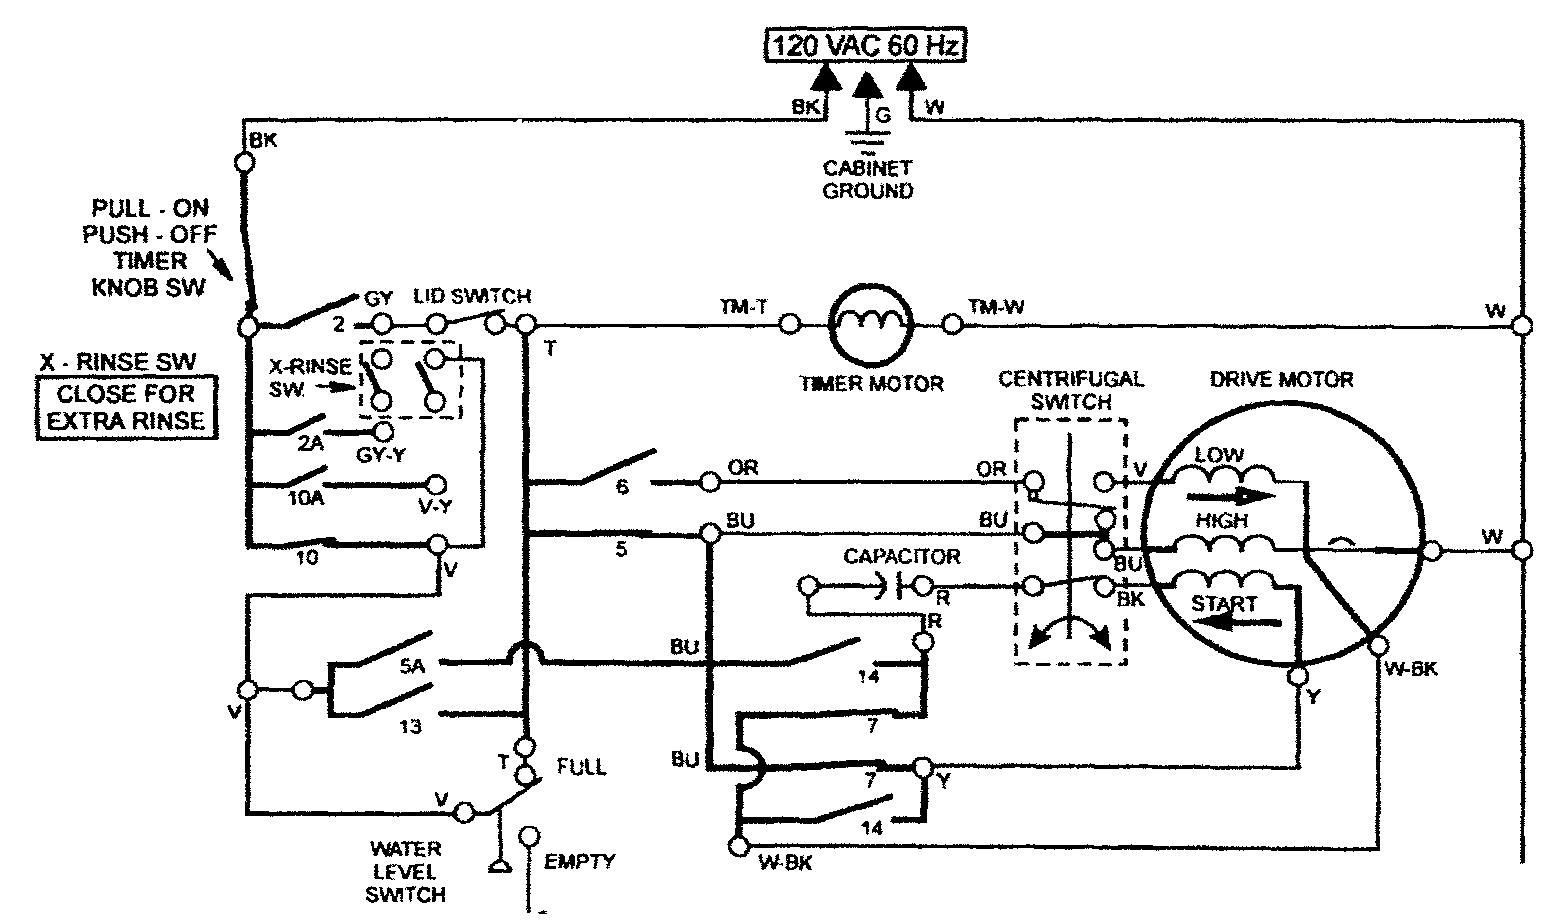 Appliance Course Module Five Figure 5 49 mat course module five sample page washing machine timer wiring diagram at crackthecode.co